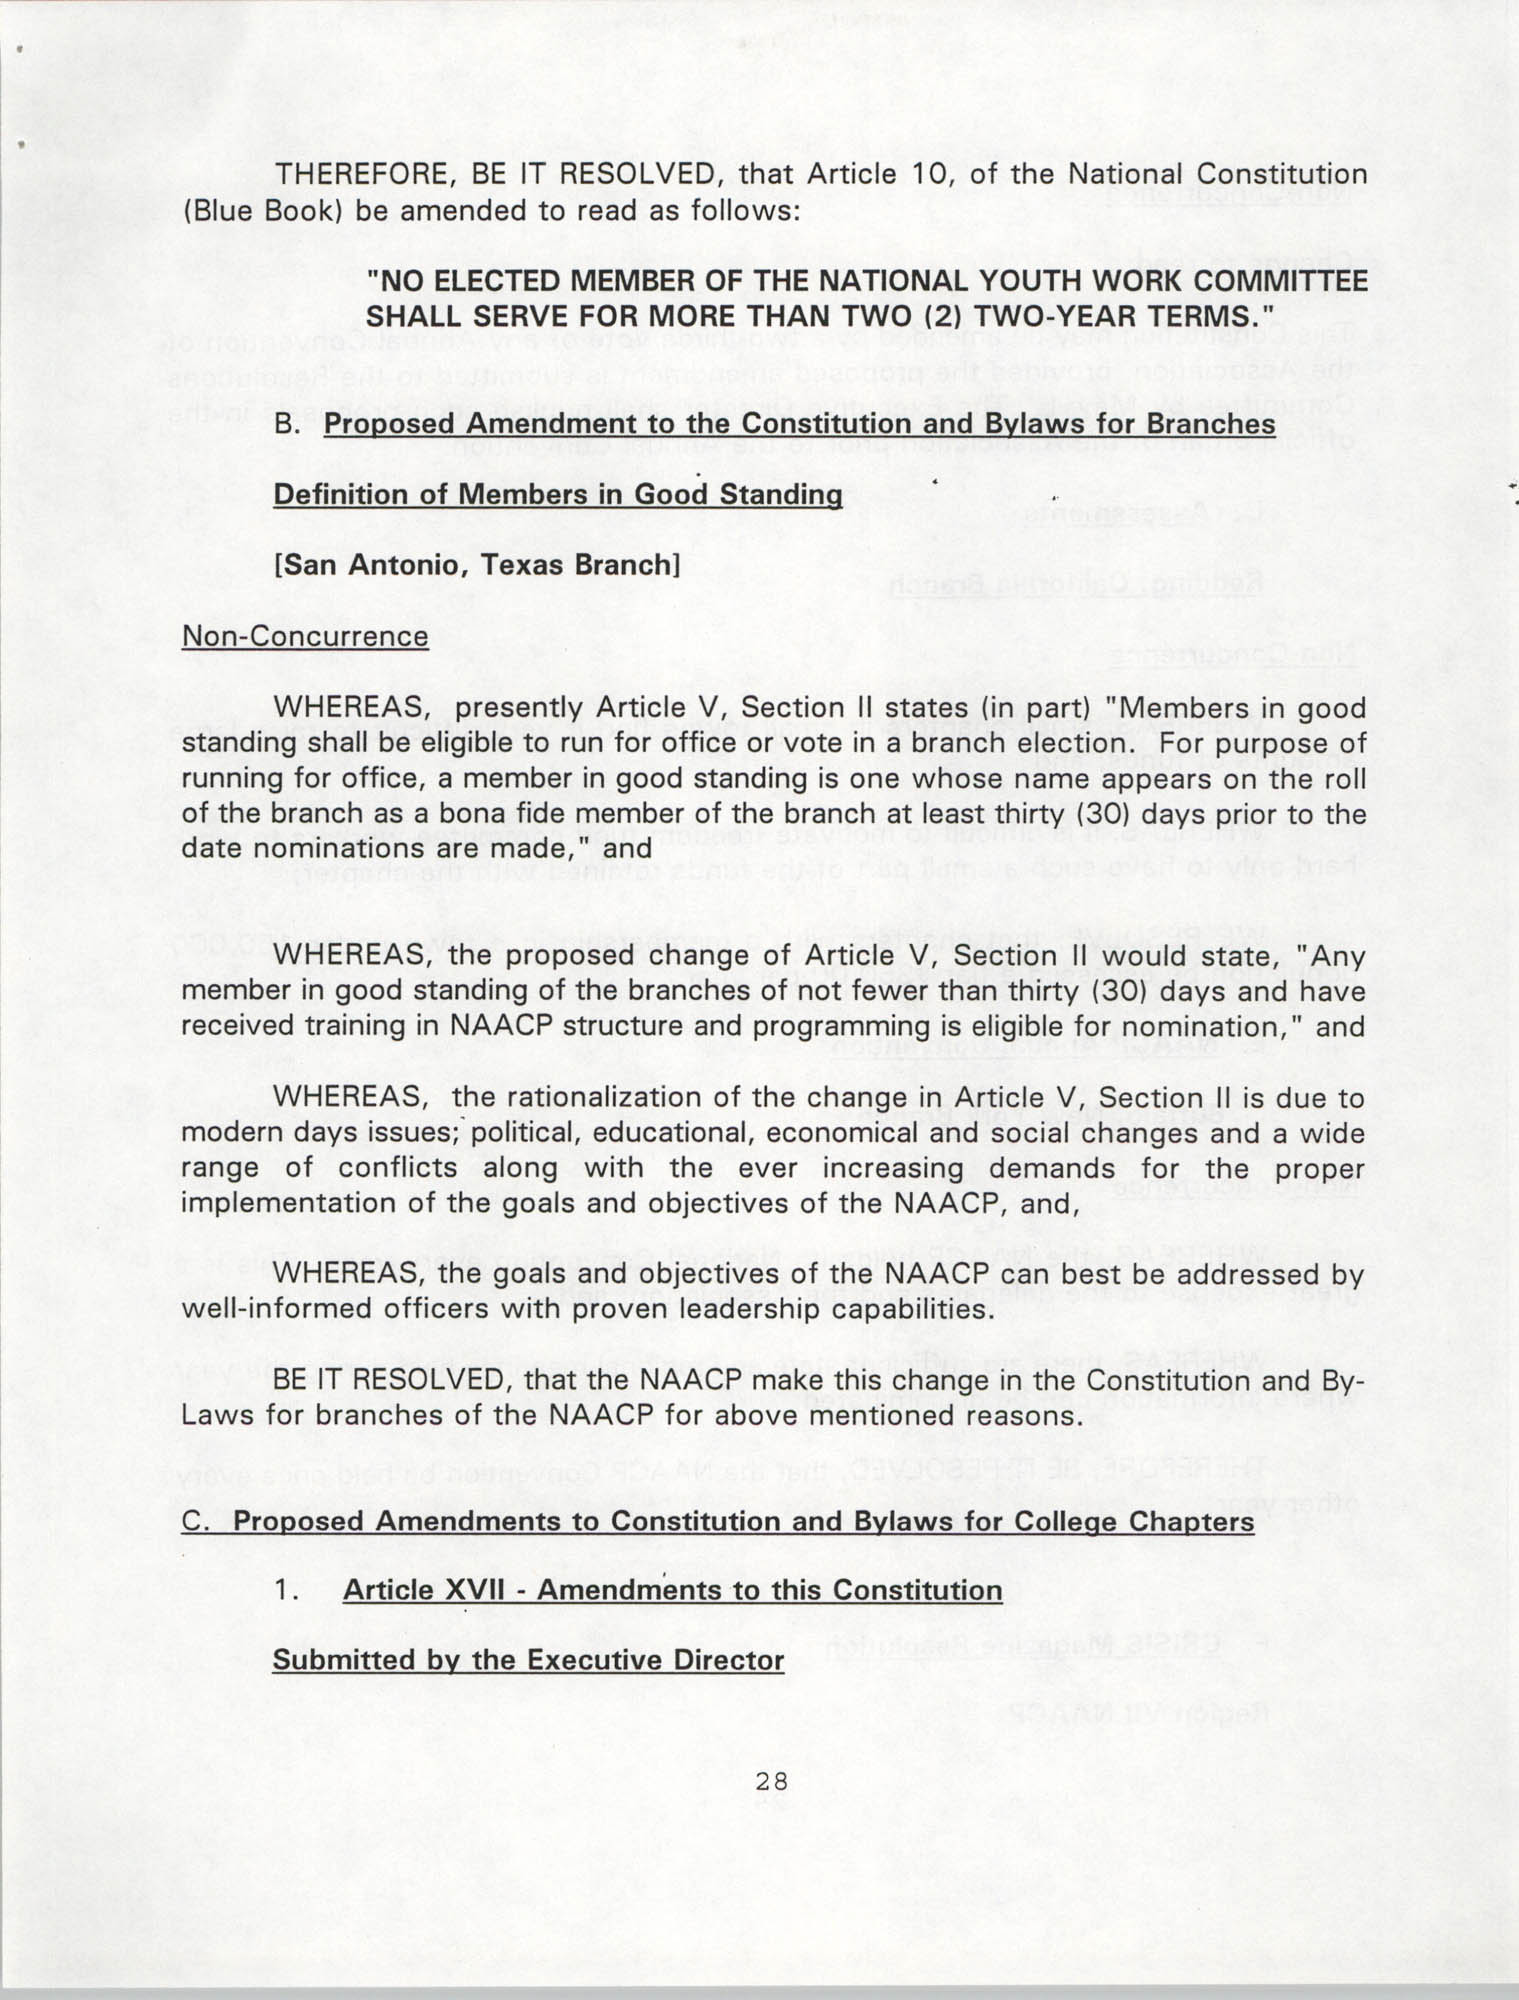 Resolutions Submitted Under Article X, Section 2 of the Constitution of the NAACP, 1994, Page 28